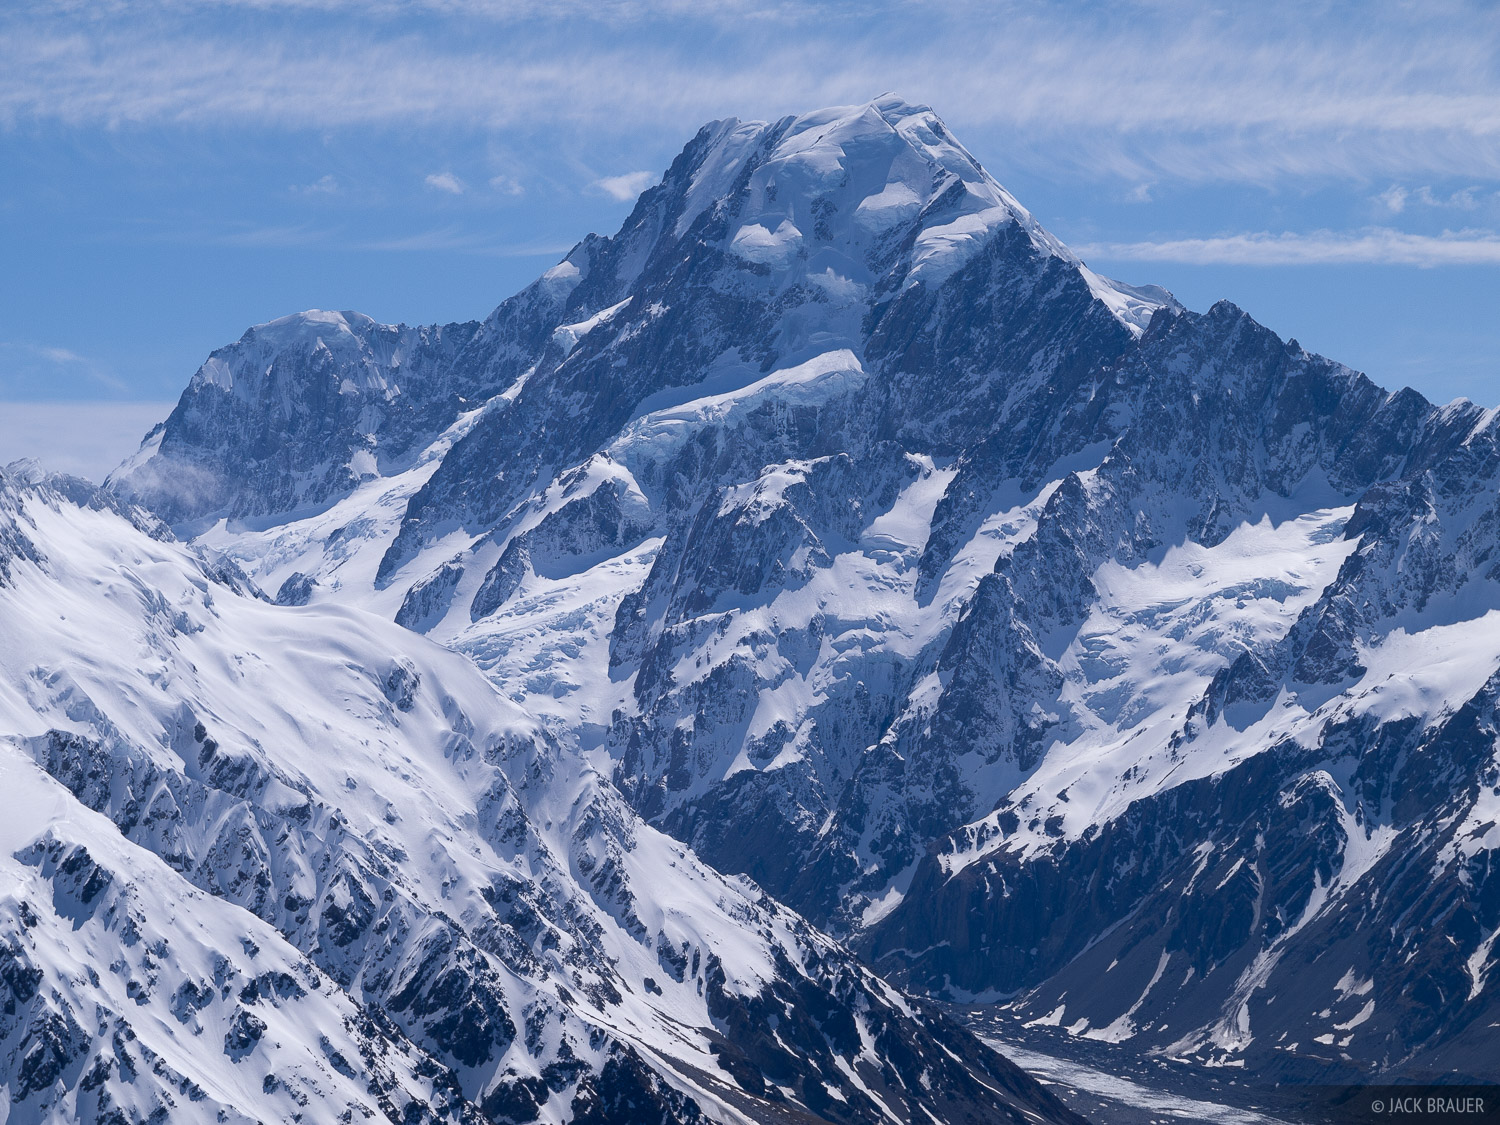 Aoraki / Mount Cookis the tallest in New Zealand, at a height of 3754m, or 12,316 ft.